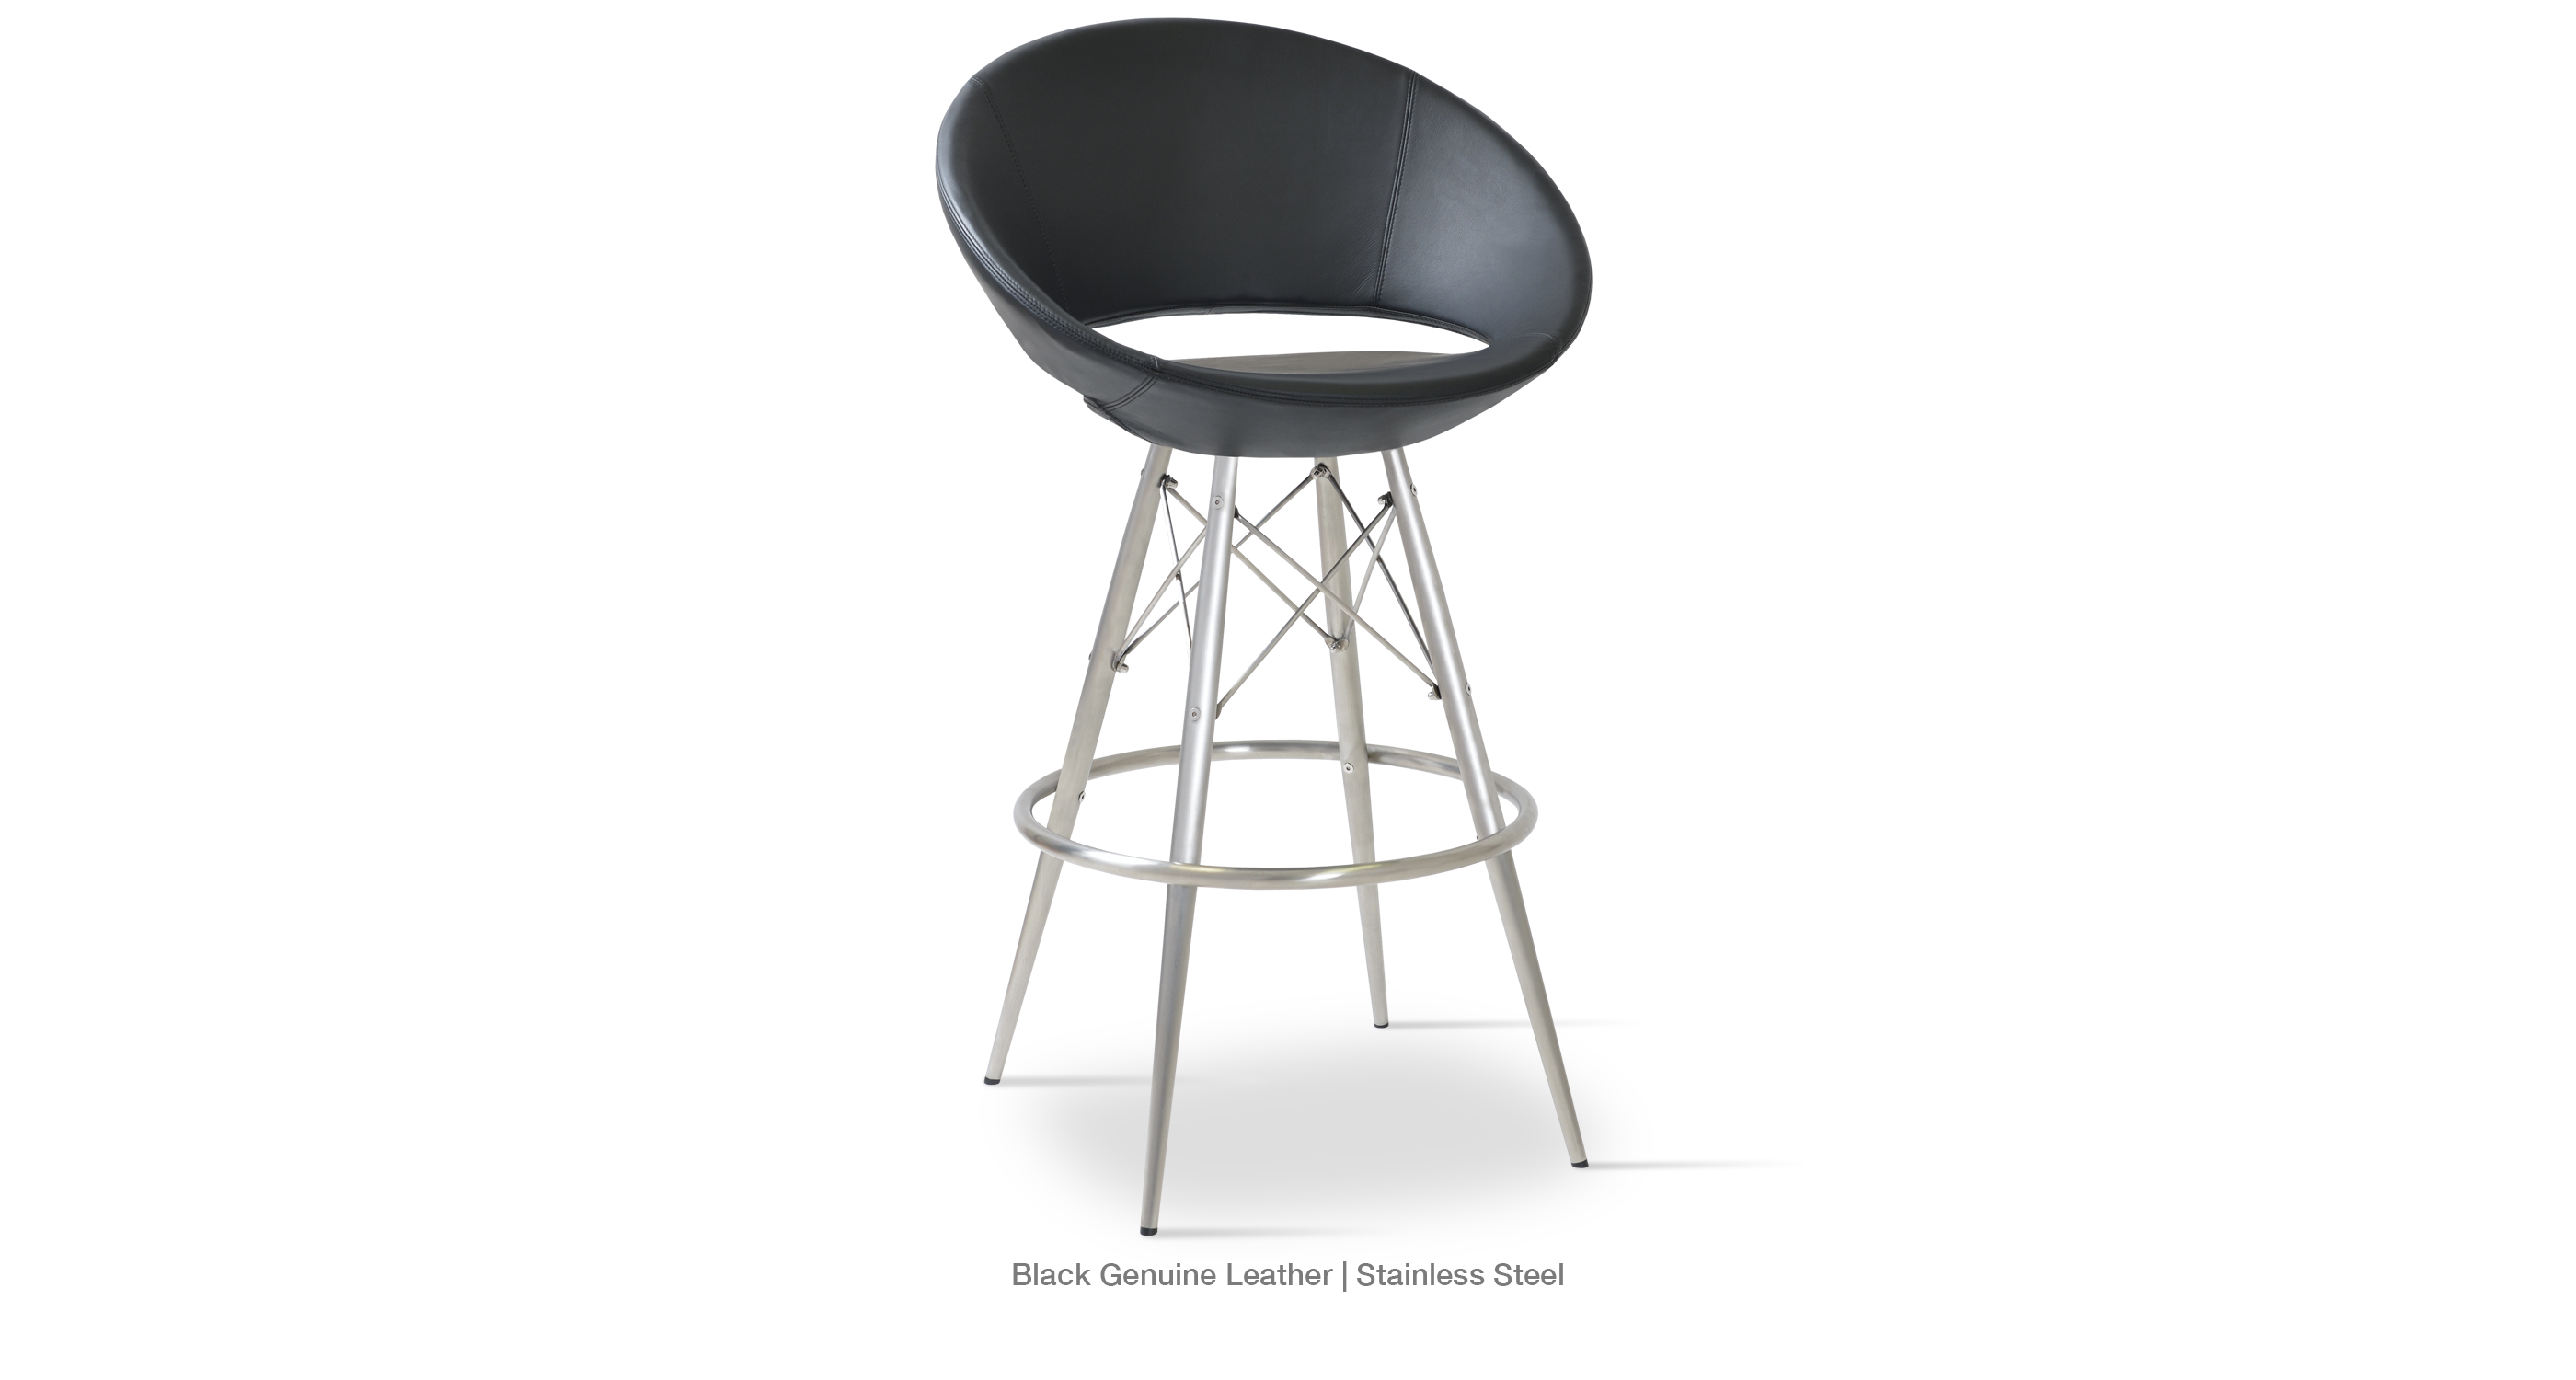 Crescent Mw Stool Black Stainless Steel